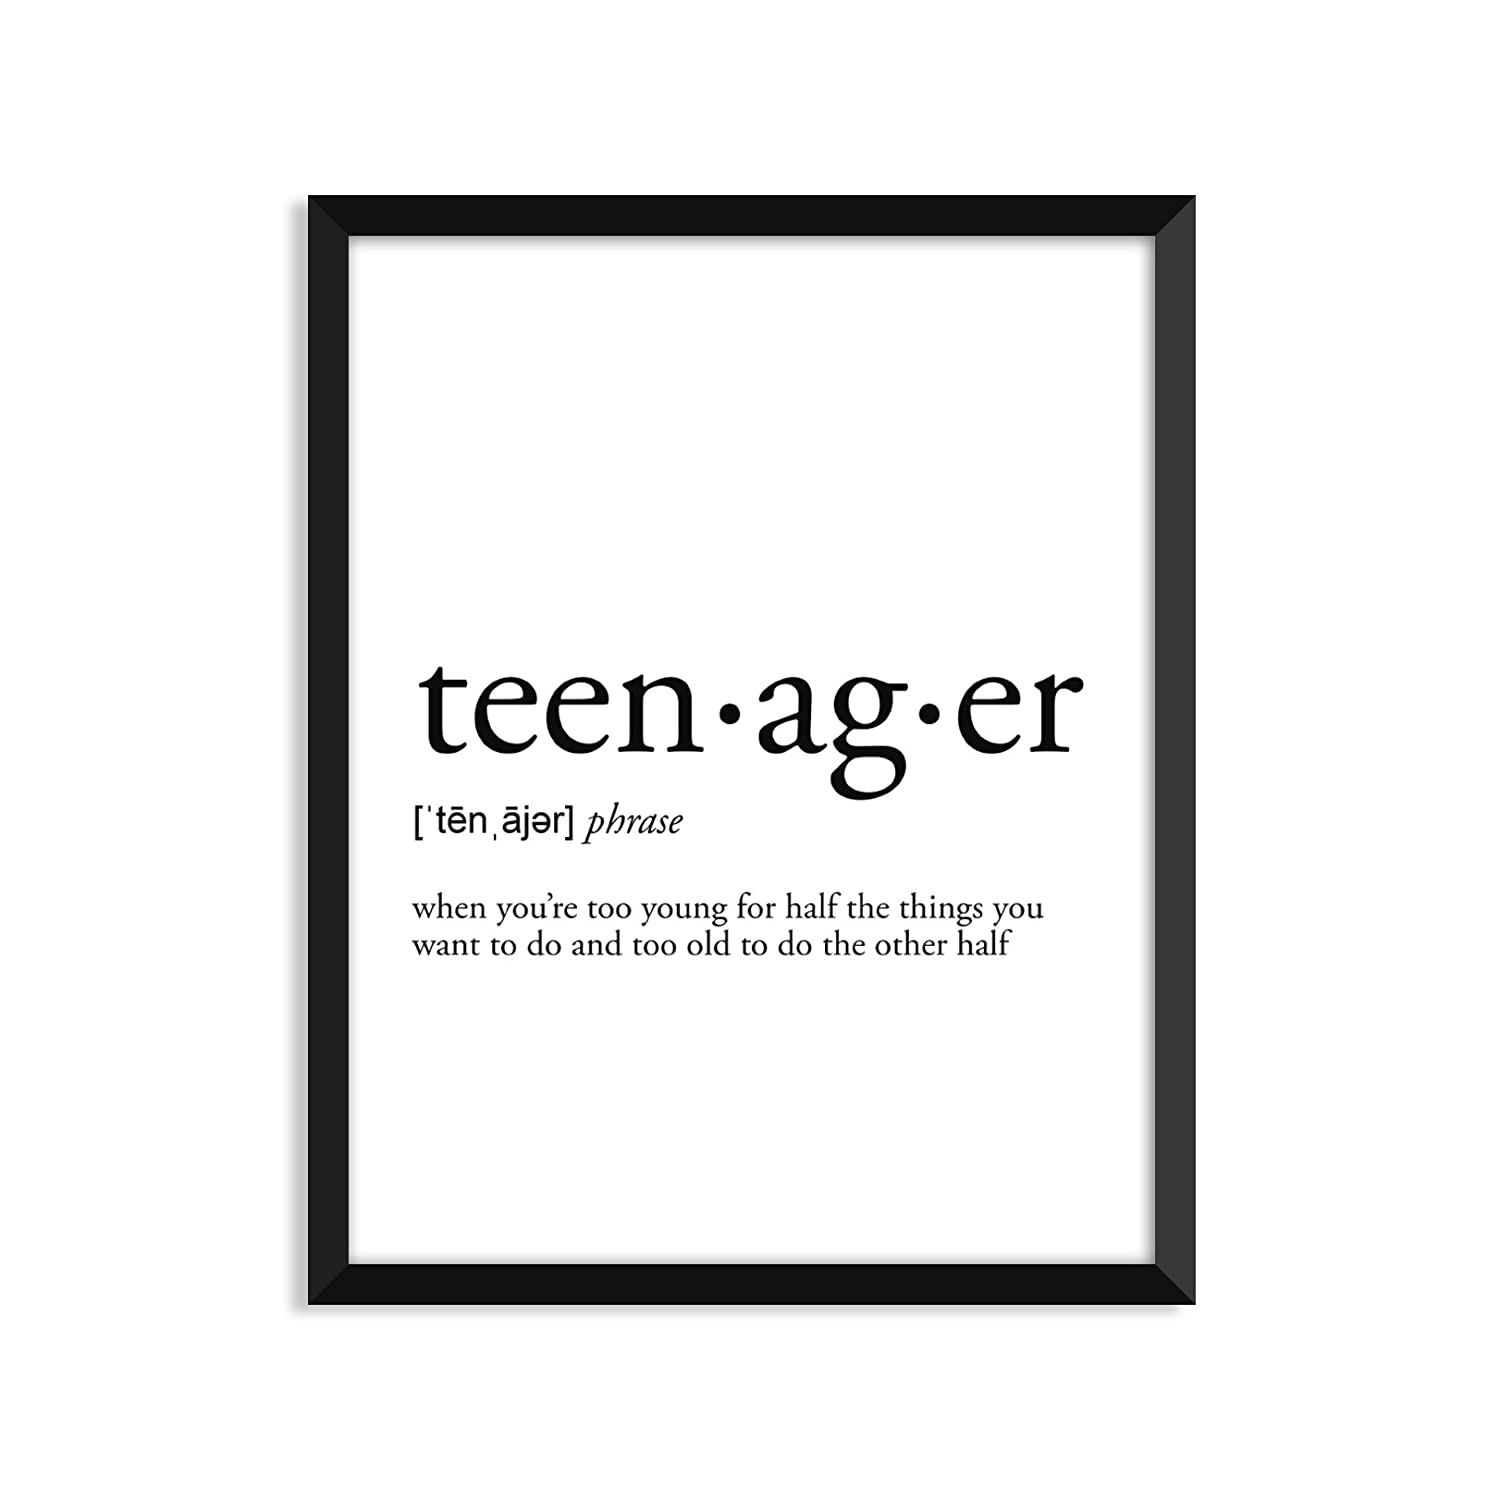 Unframed Art Print Poster Or Greeting Card FN0094G Teenager Definition